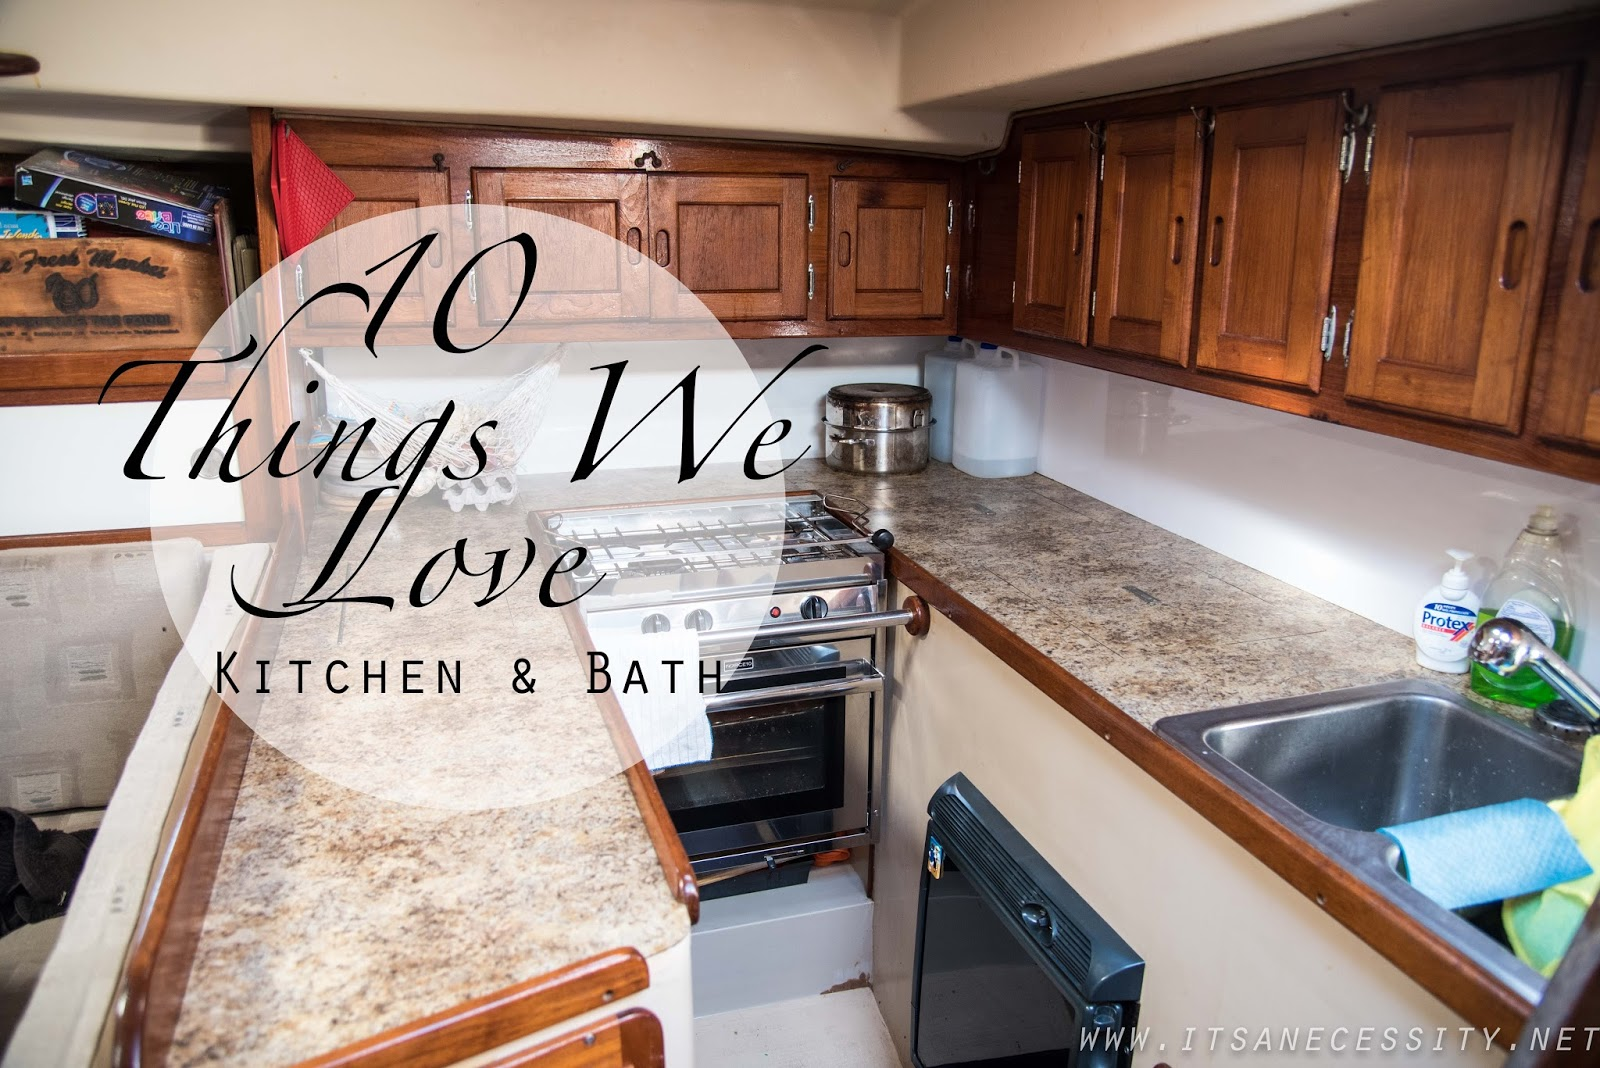 10 things we use daily on our boat kitchen bath edition it s a